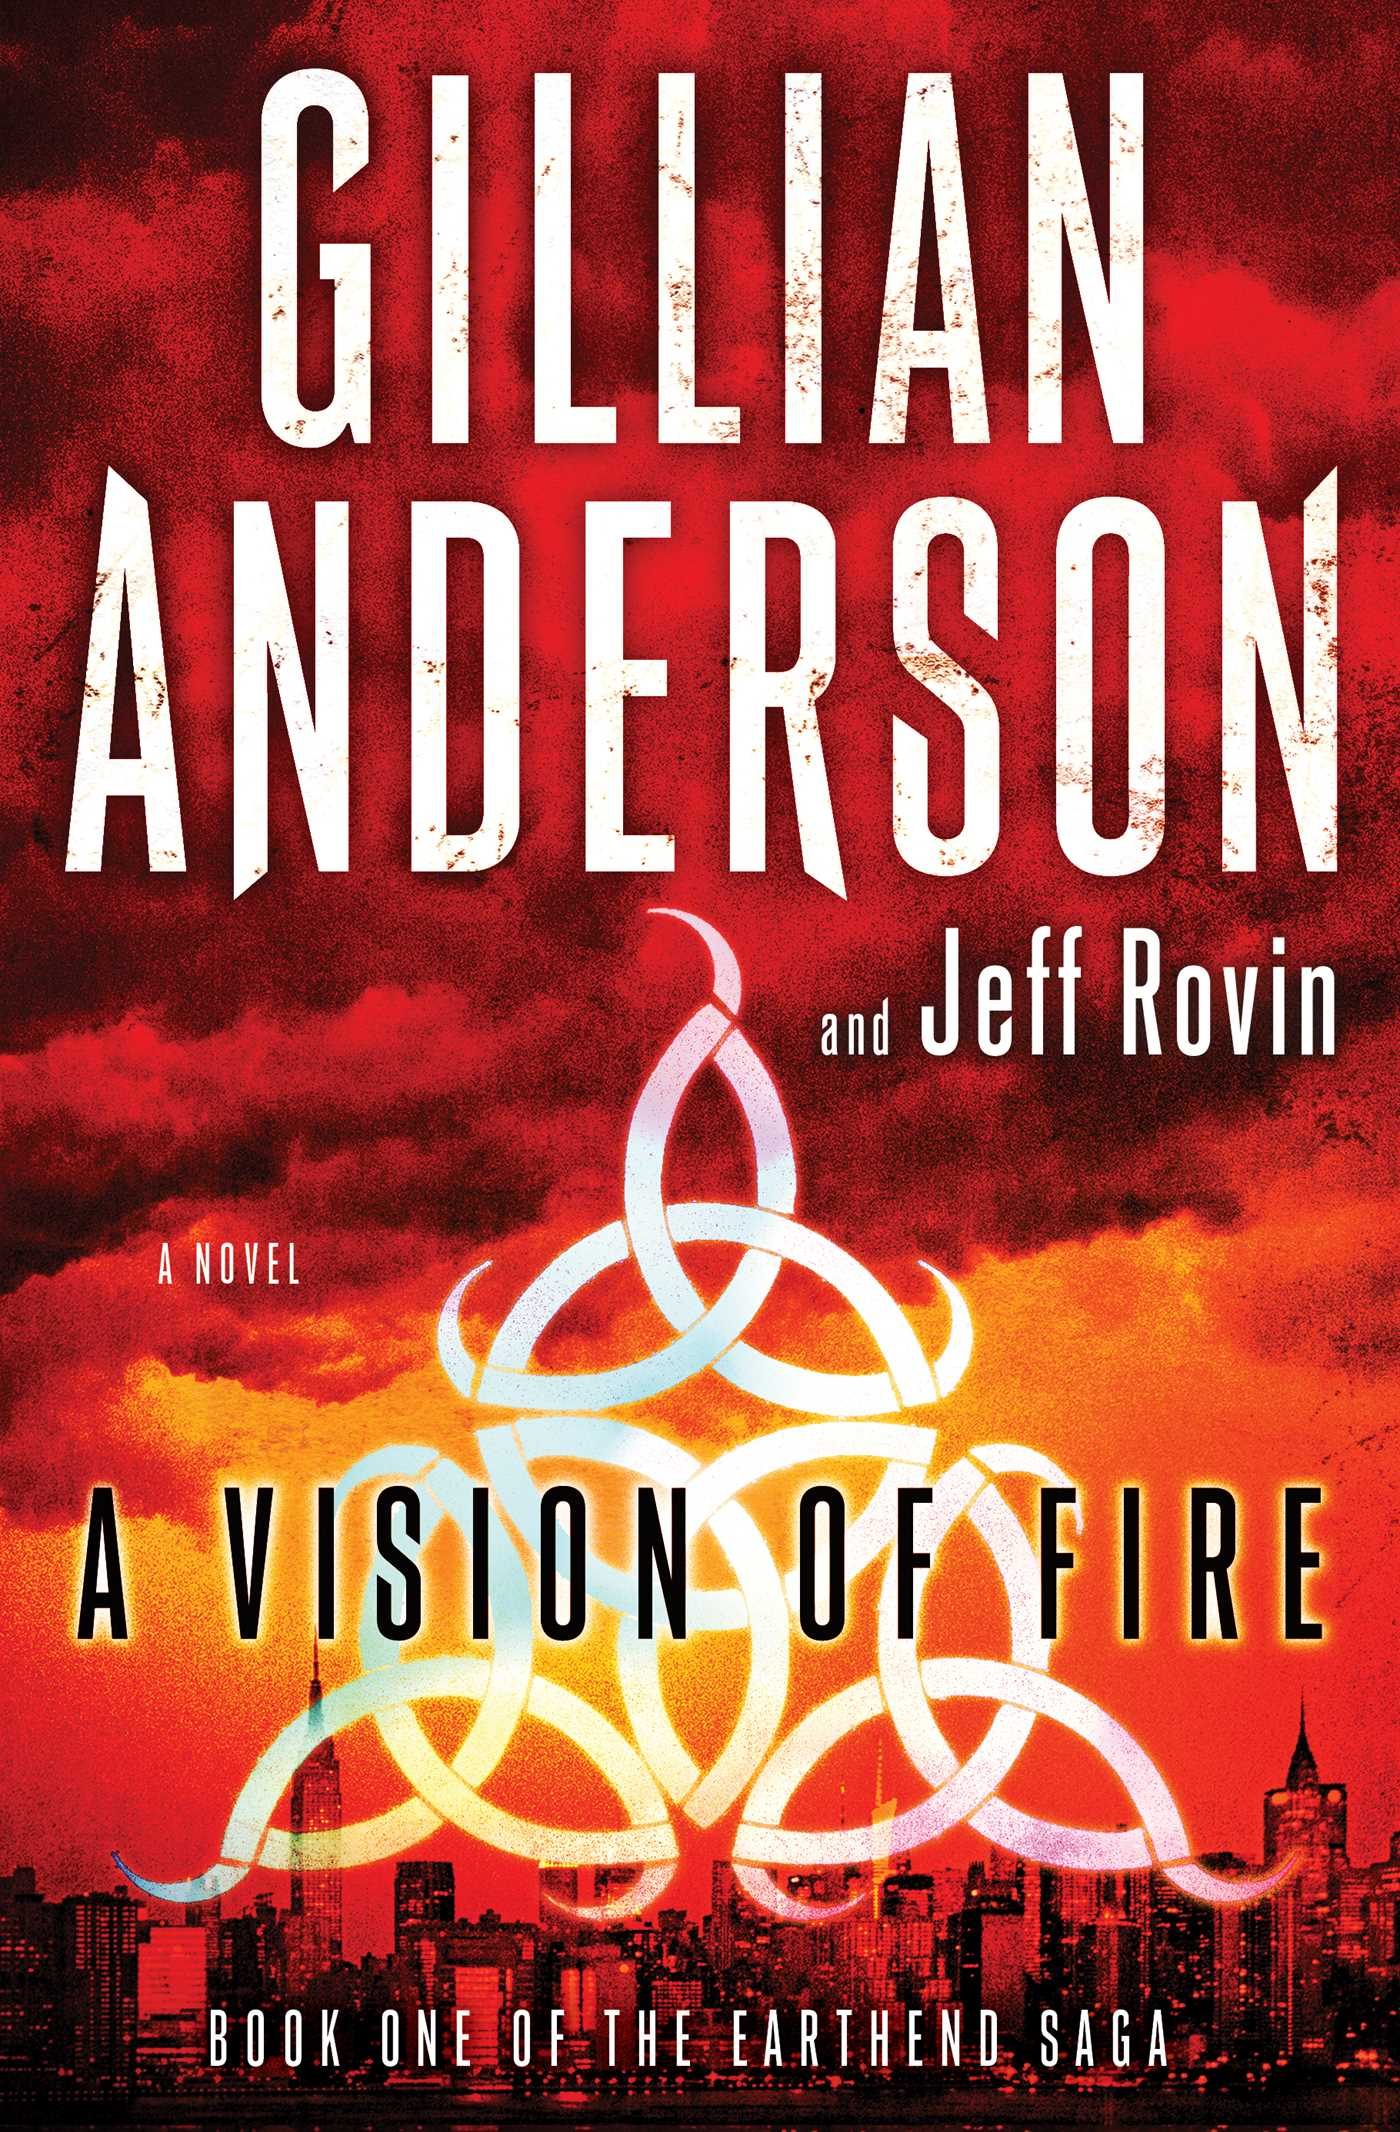 Vision-of-fire-9781476776521_hr